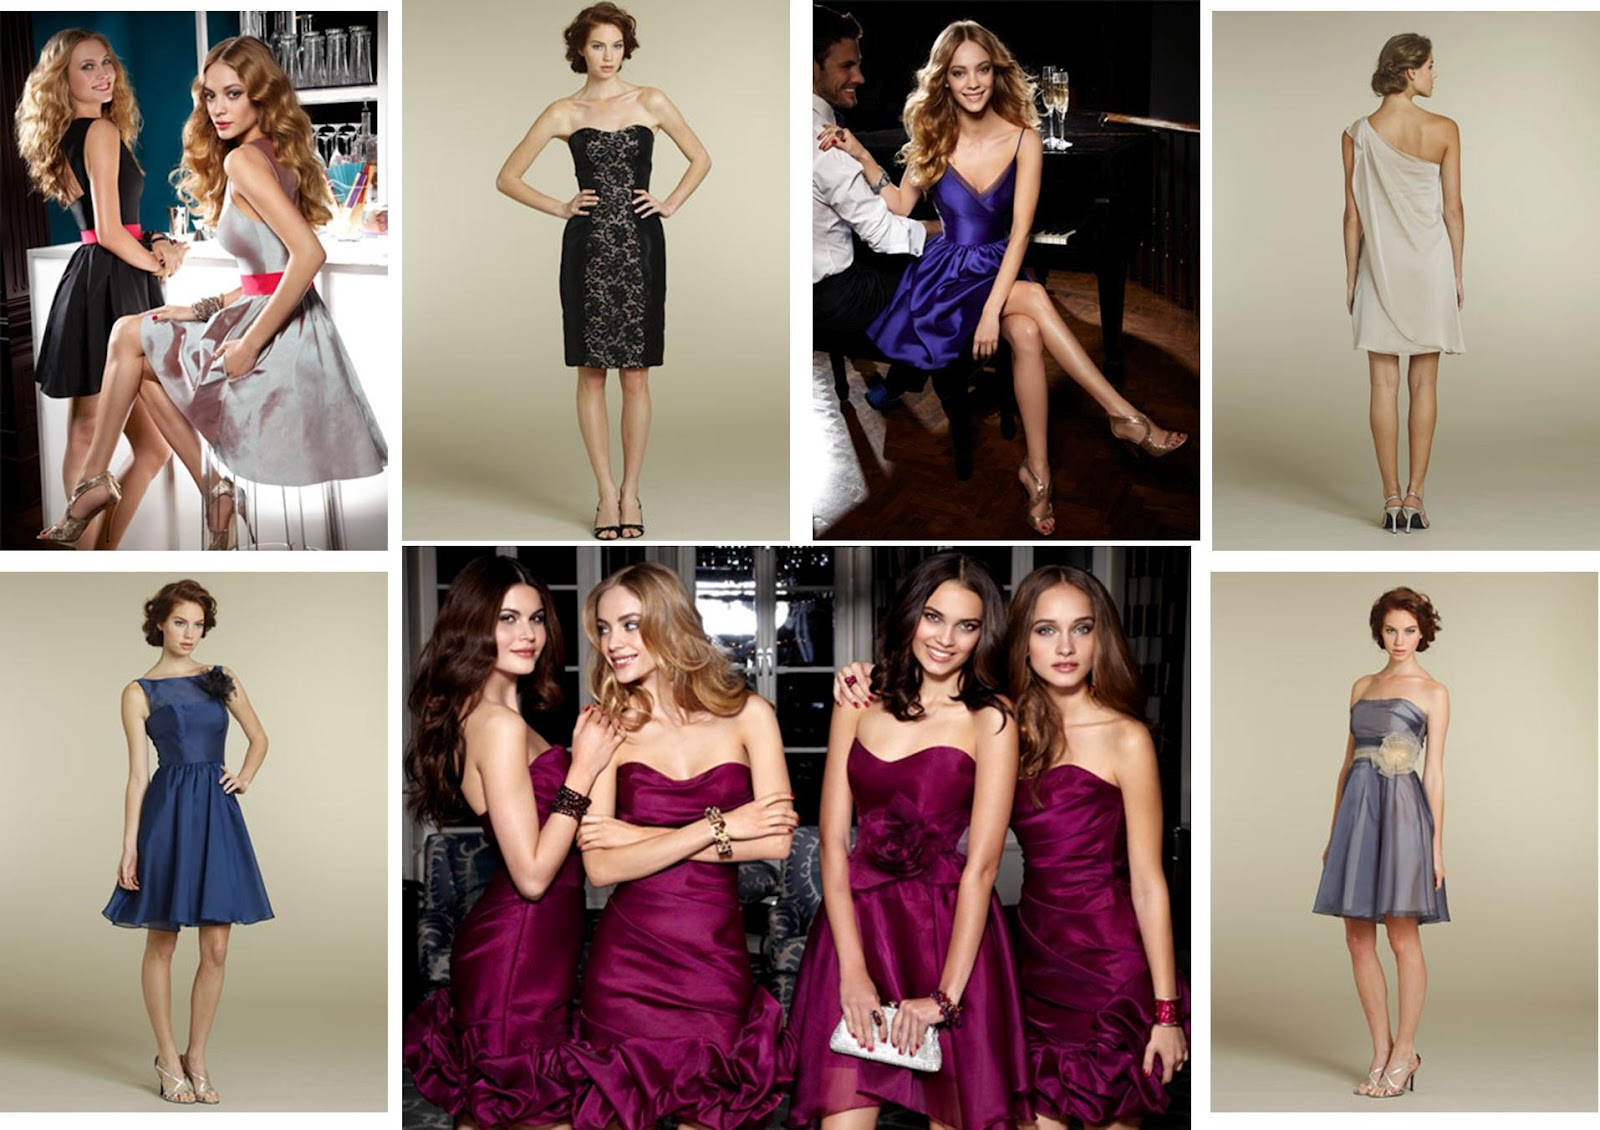 Fly me to the moon knockout bridesmaids dresses 200th post knockout bridesmaids dresses 200th post ombrellifo Gallery